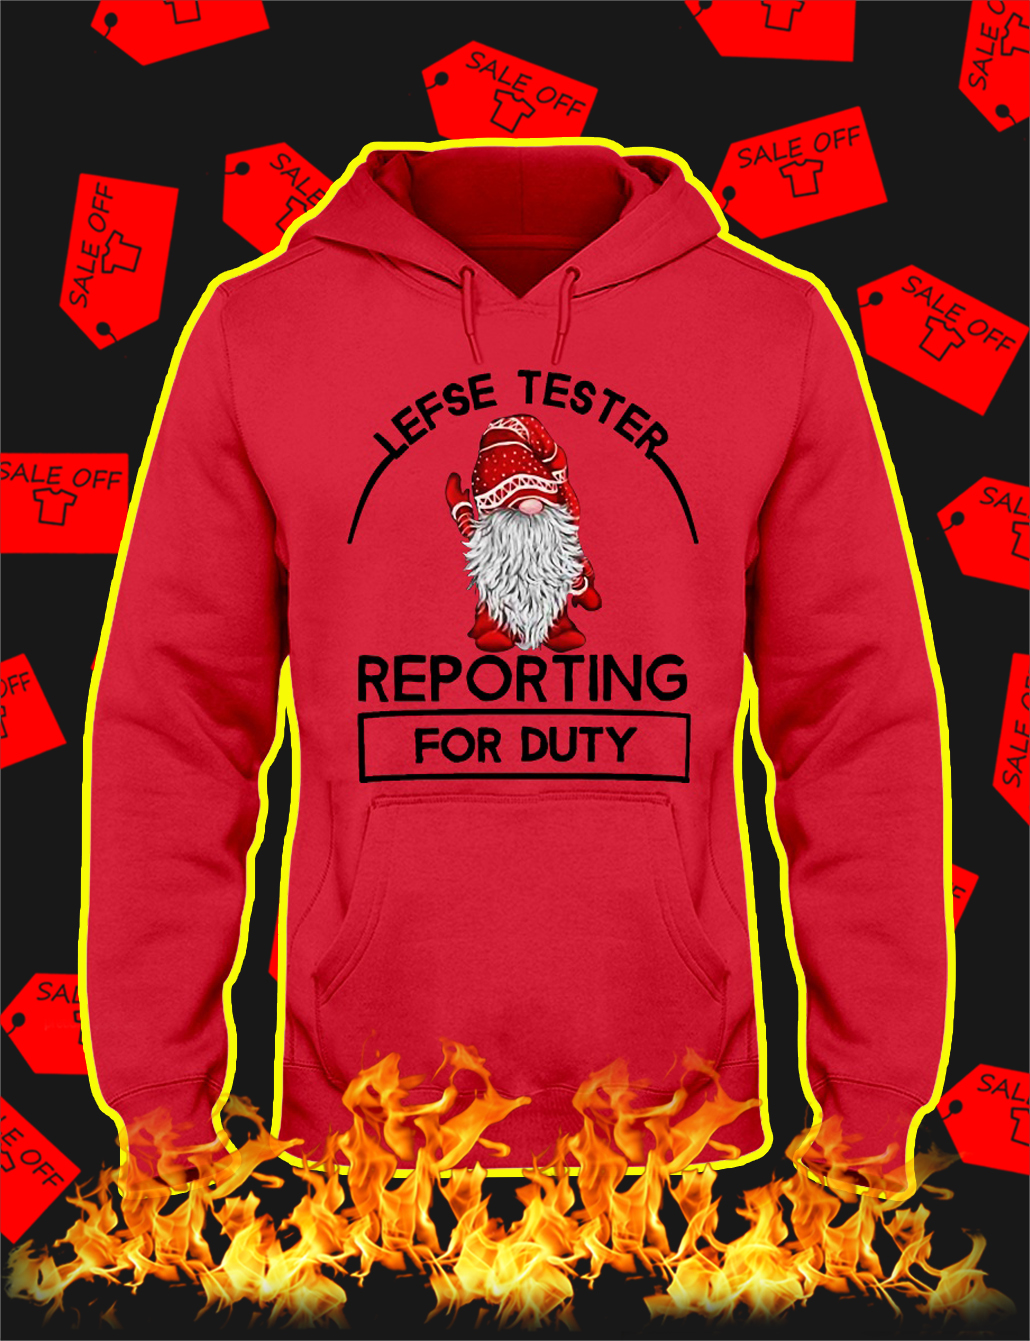 Lefse Tester Reporting For Duty hooded sweatshirt